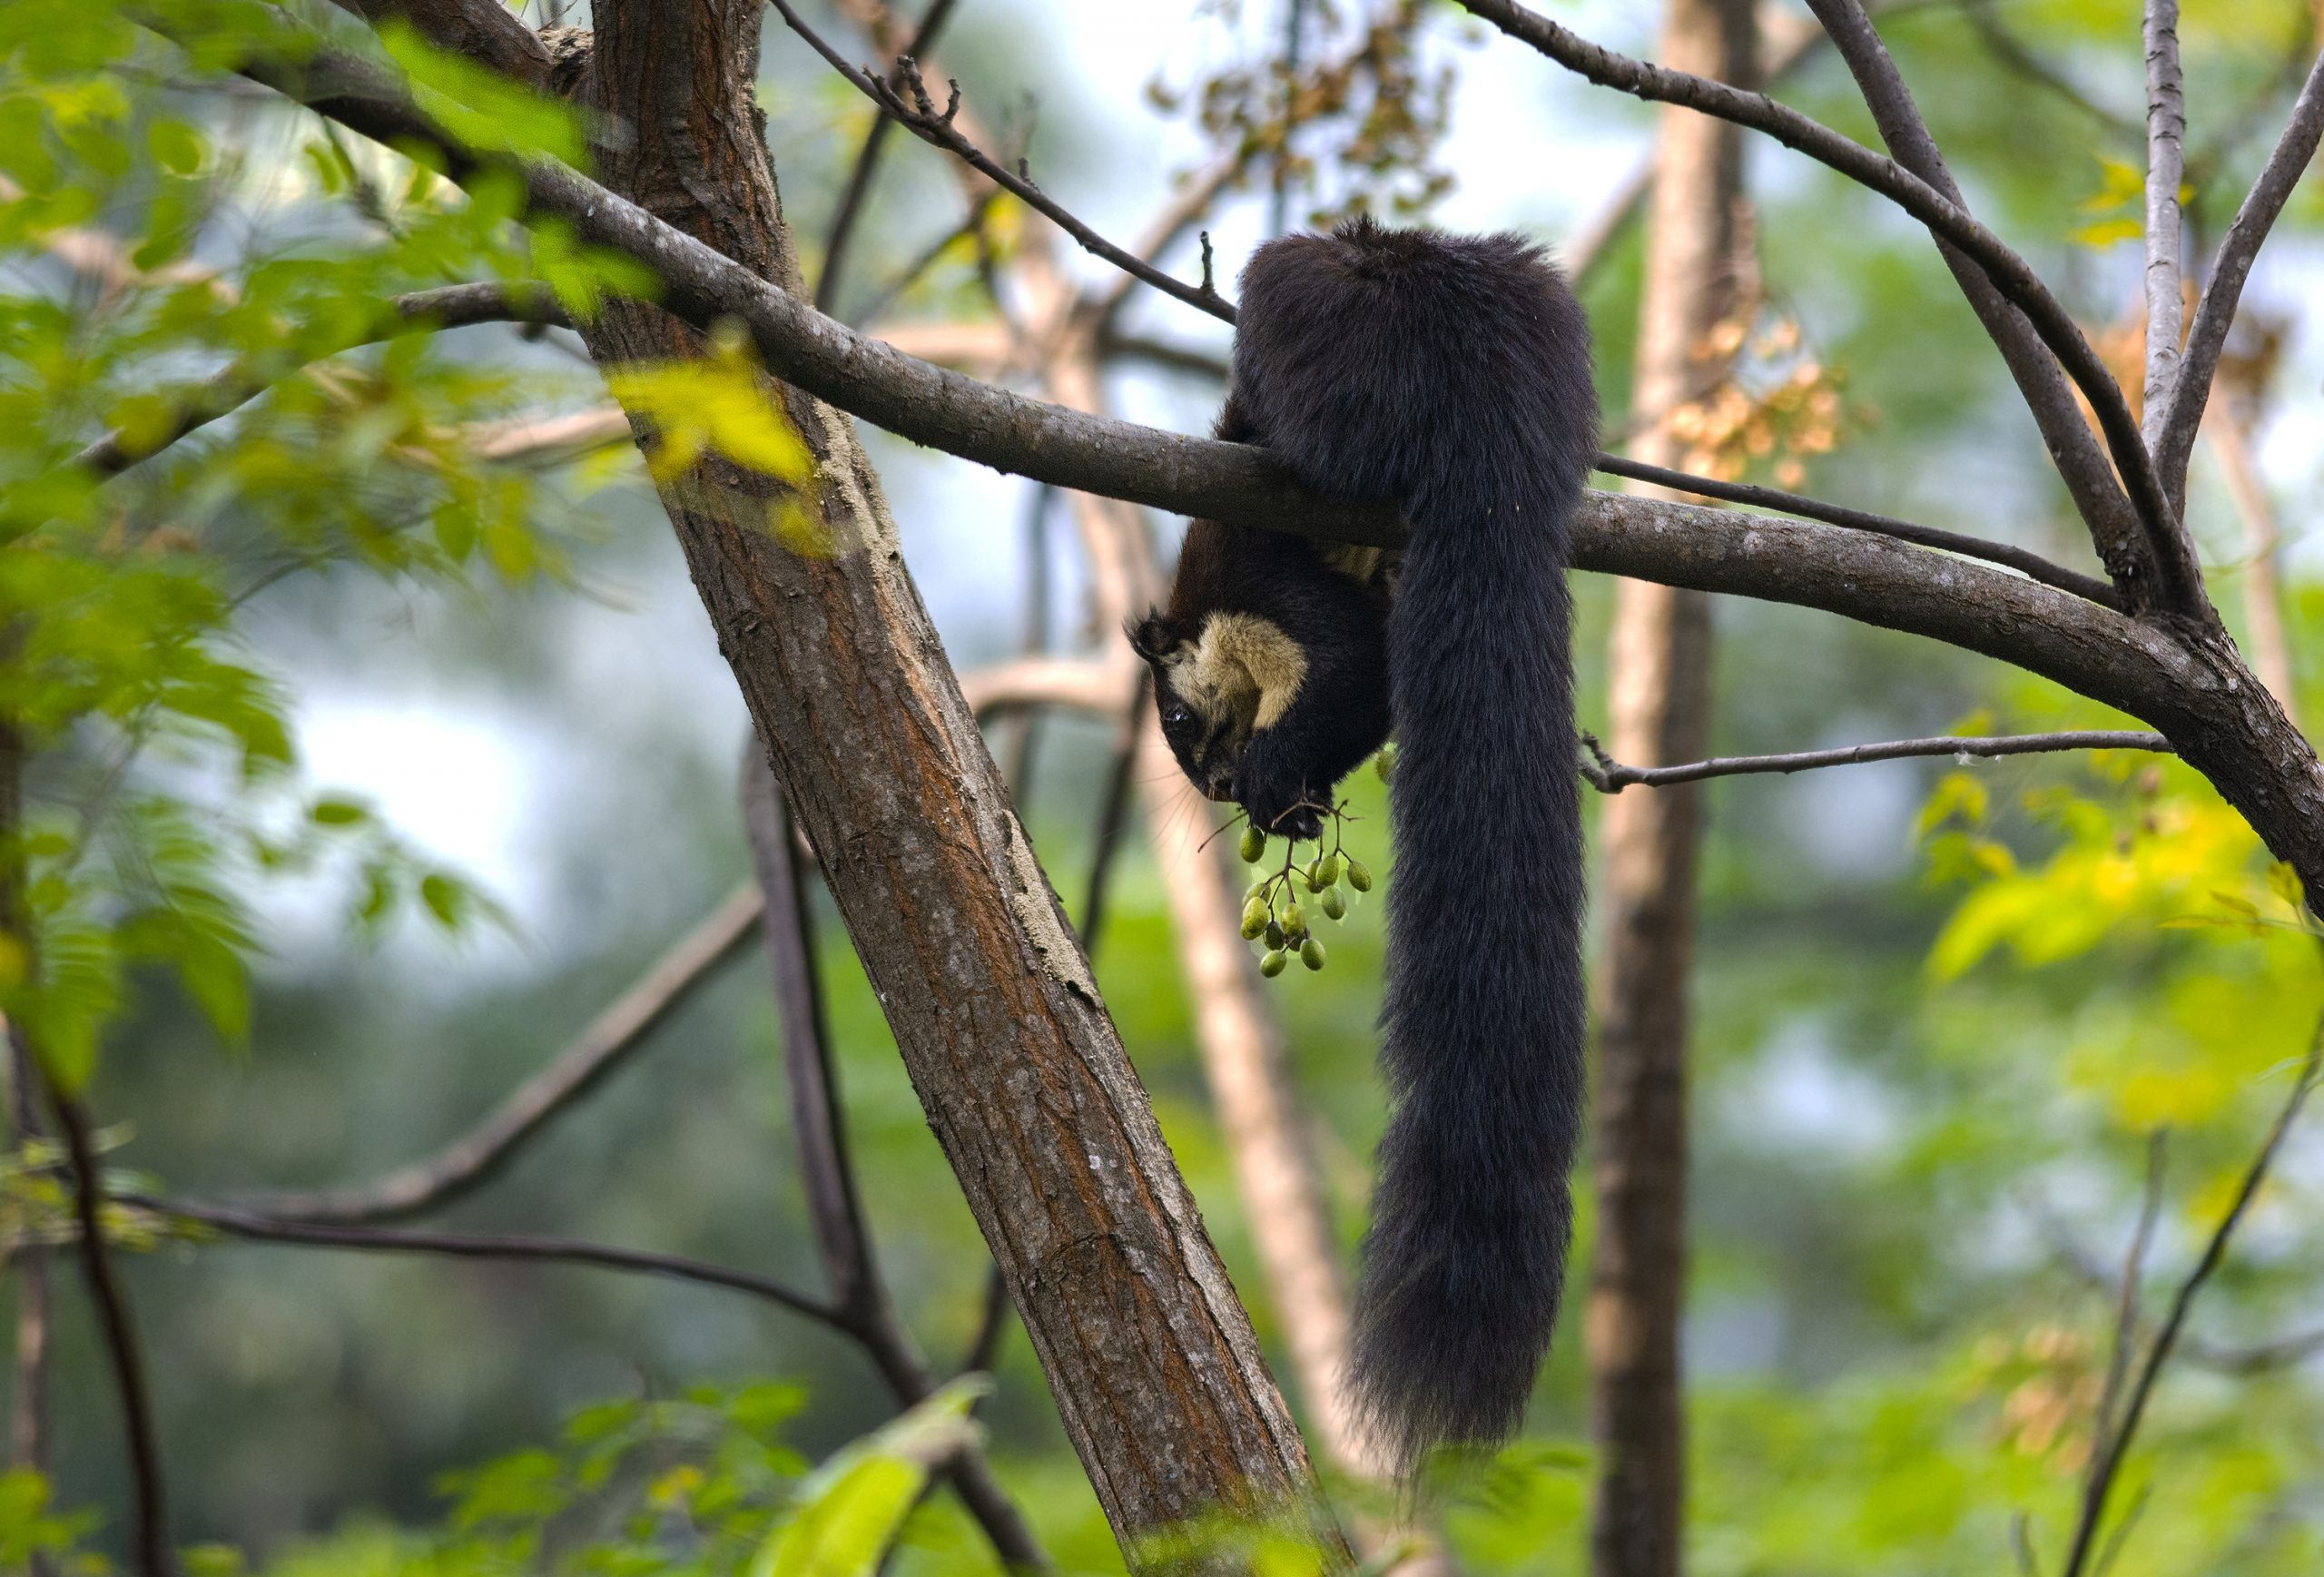 Himalayan Squirrel on the Trees